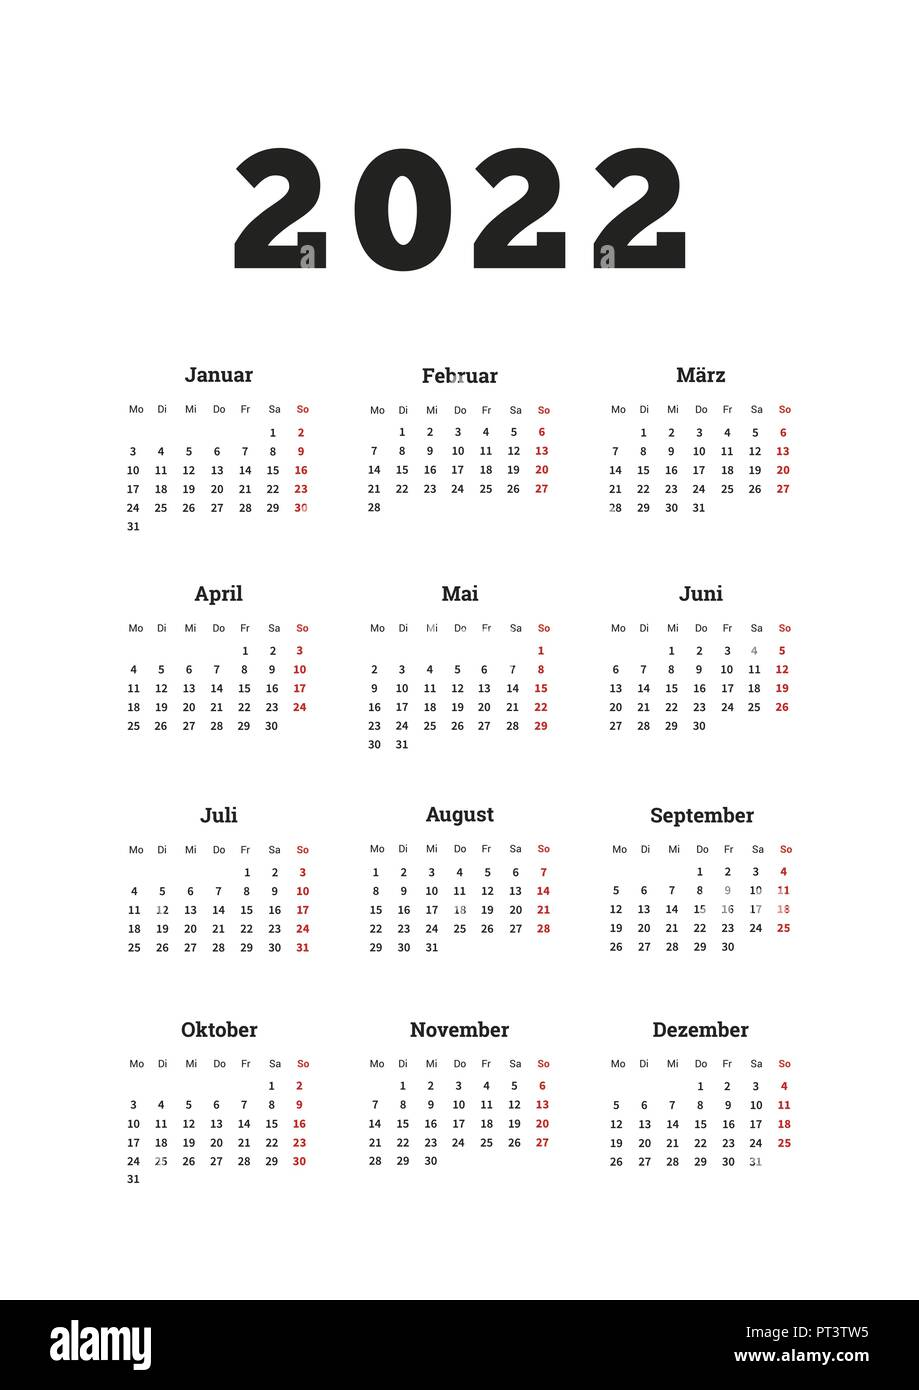 Calendrier 2022 Simple Calendar 2022 High Resolution Stock Photography and Images   Alamy